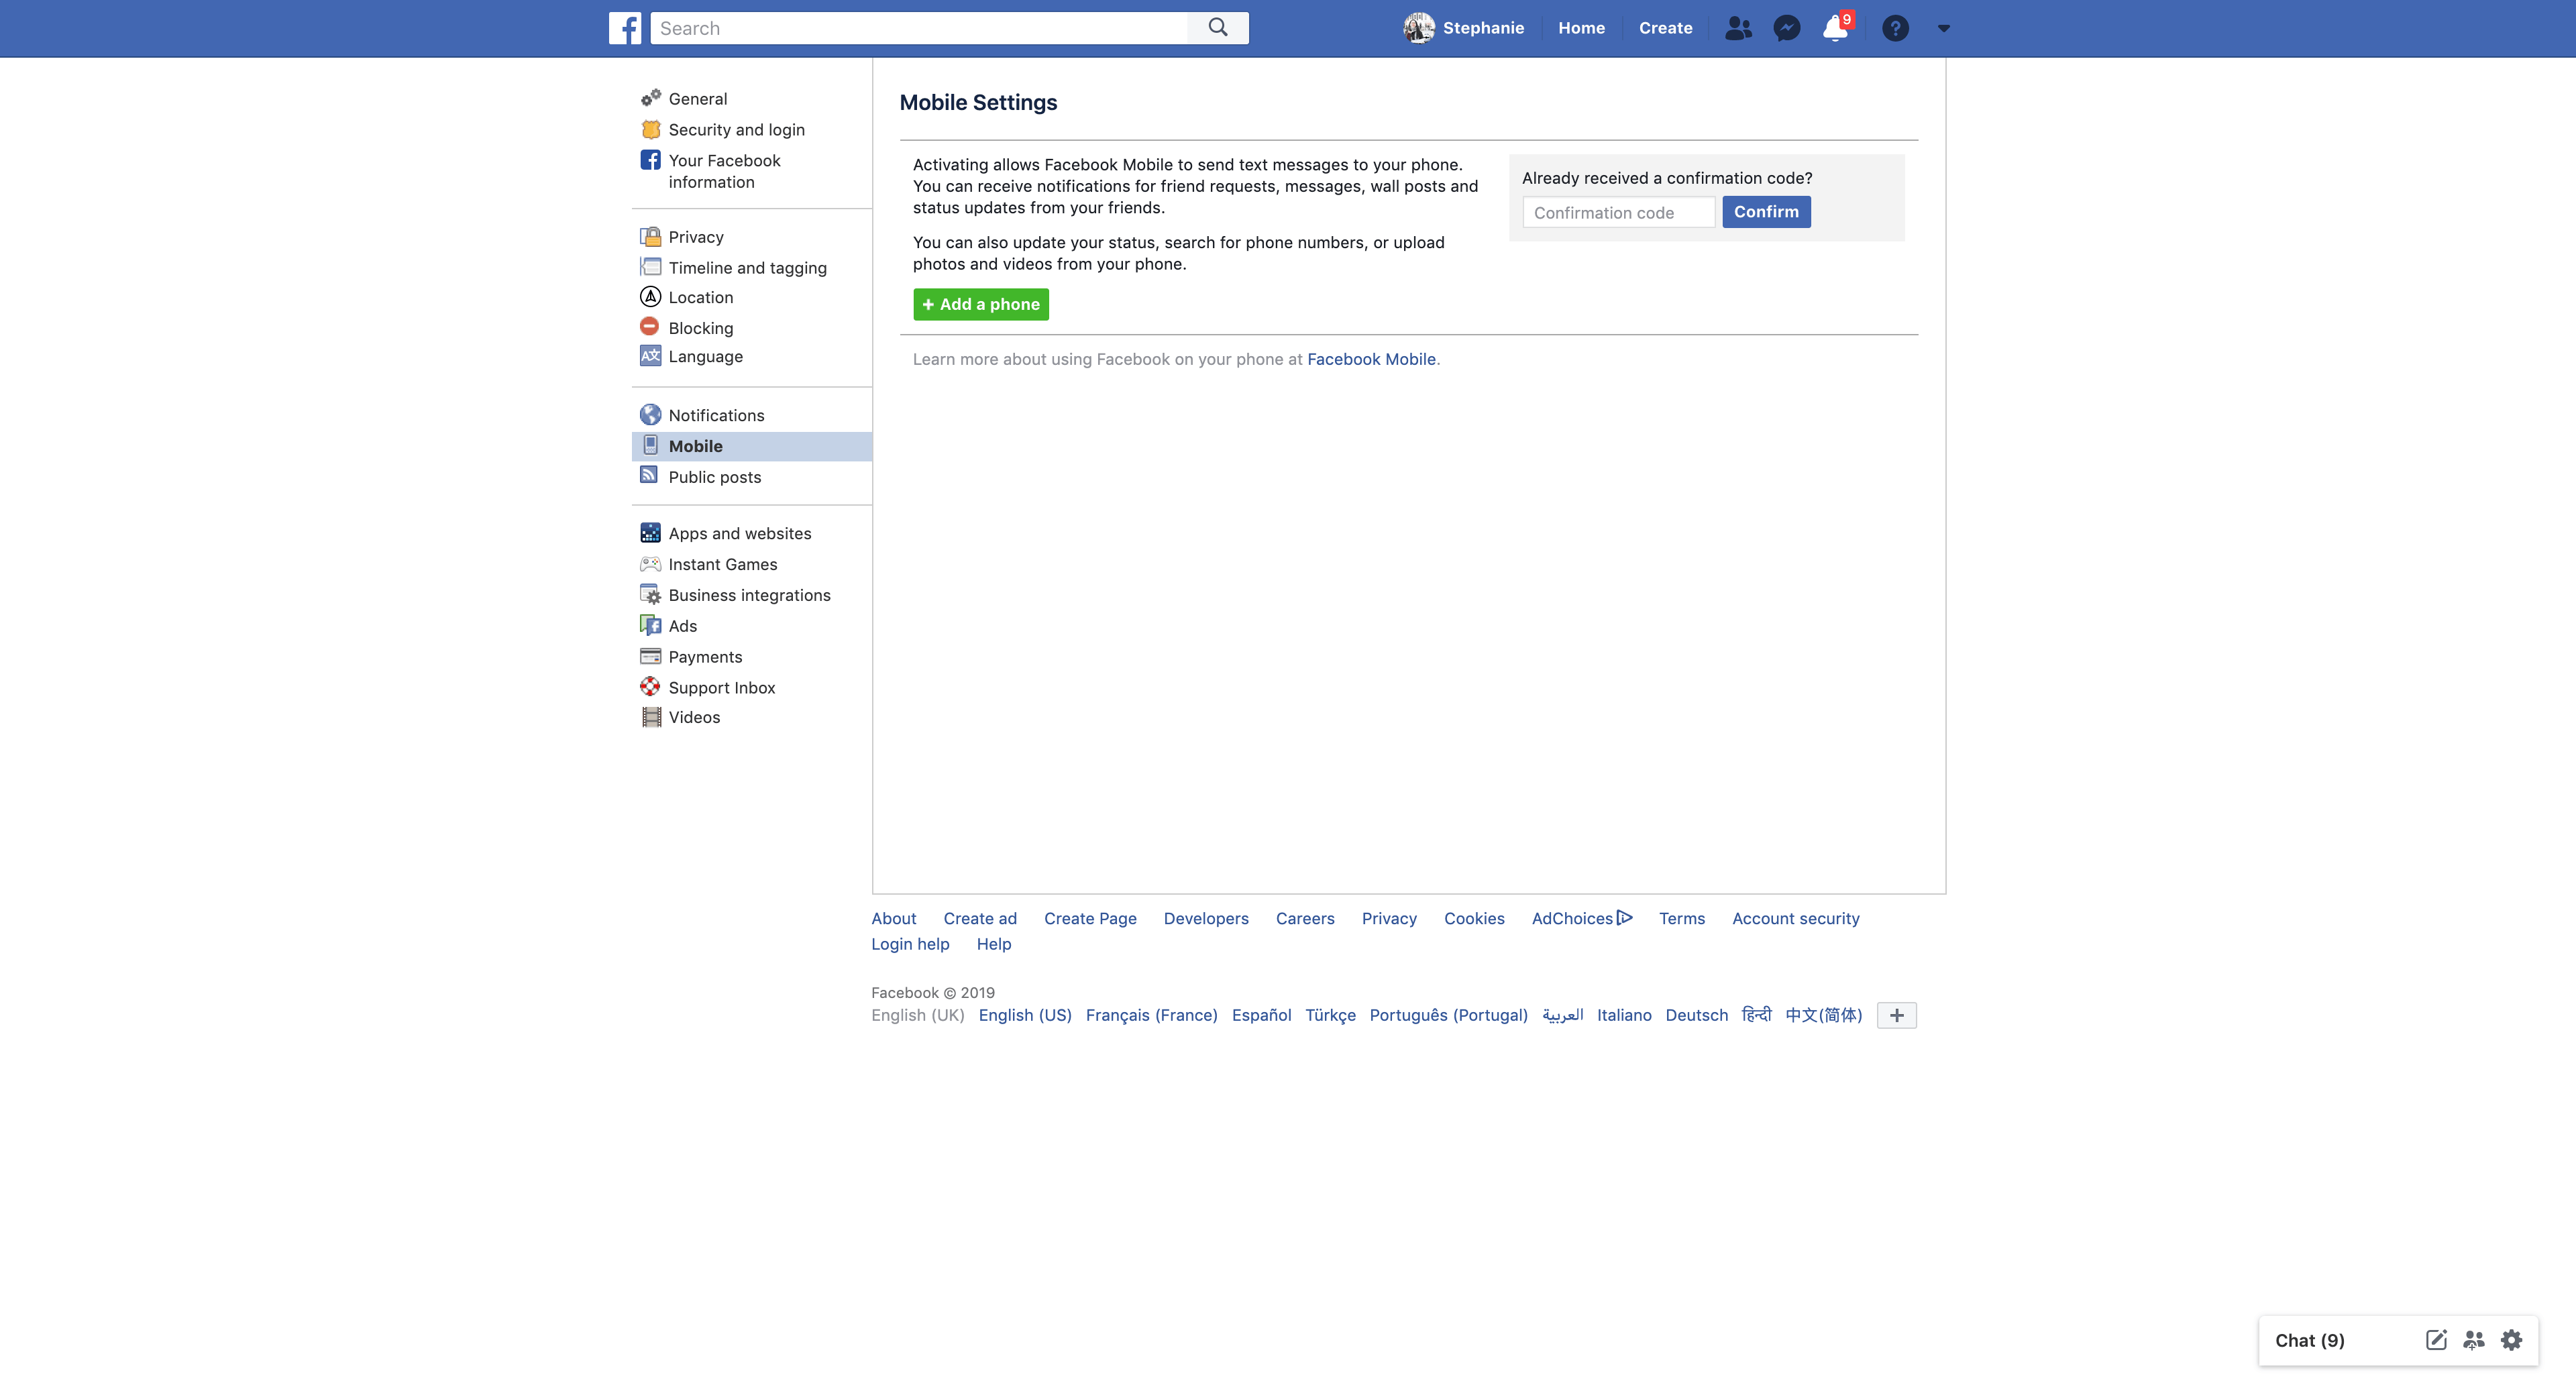 Mobile Settings by Facebook Settings  - UI Garage - The database of UI